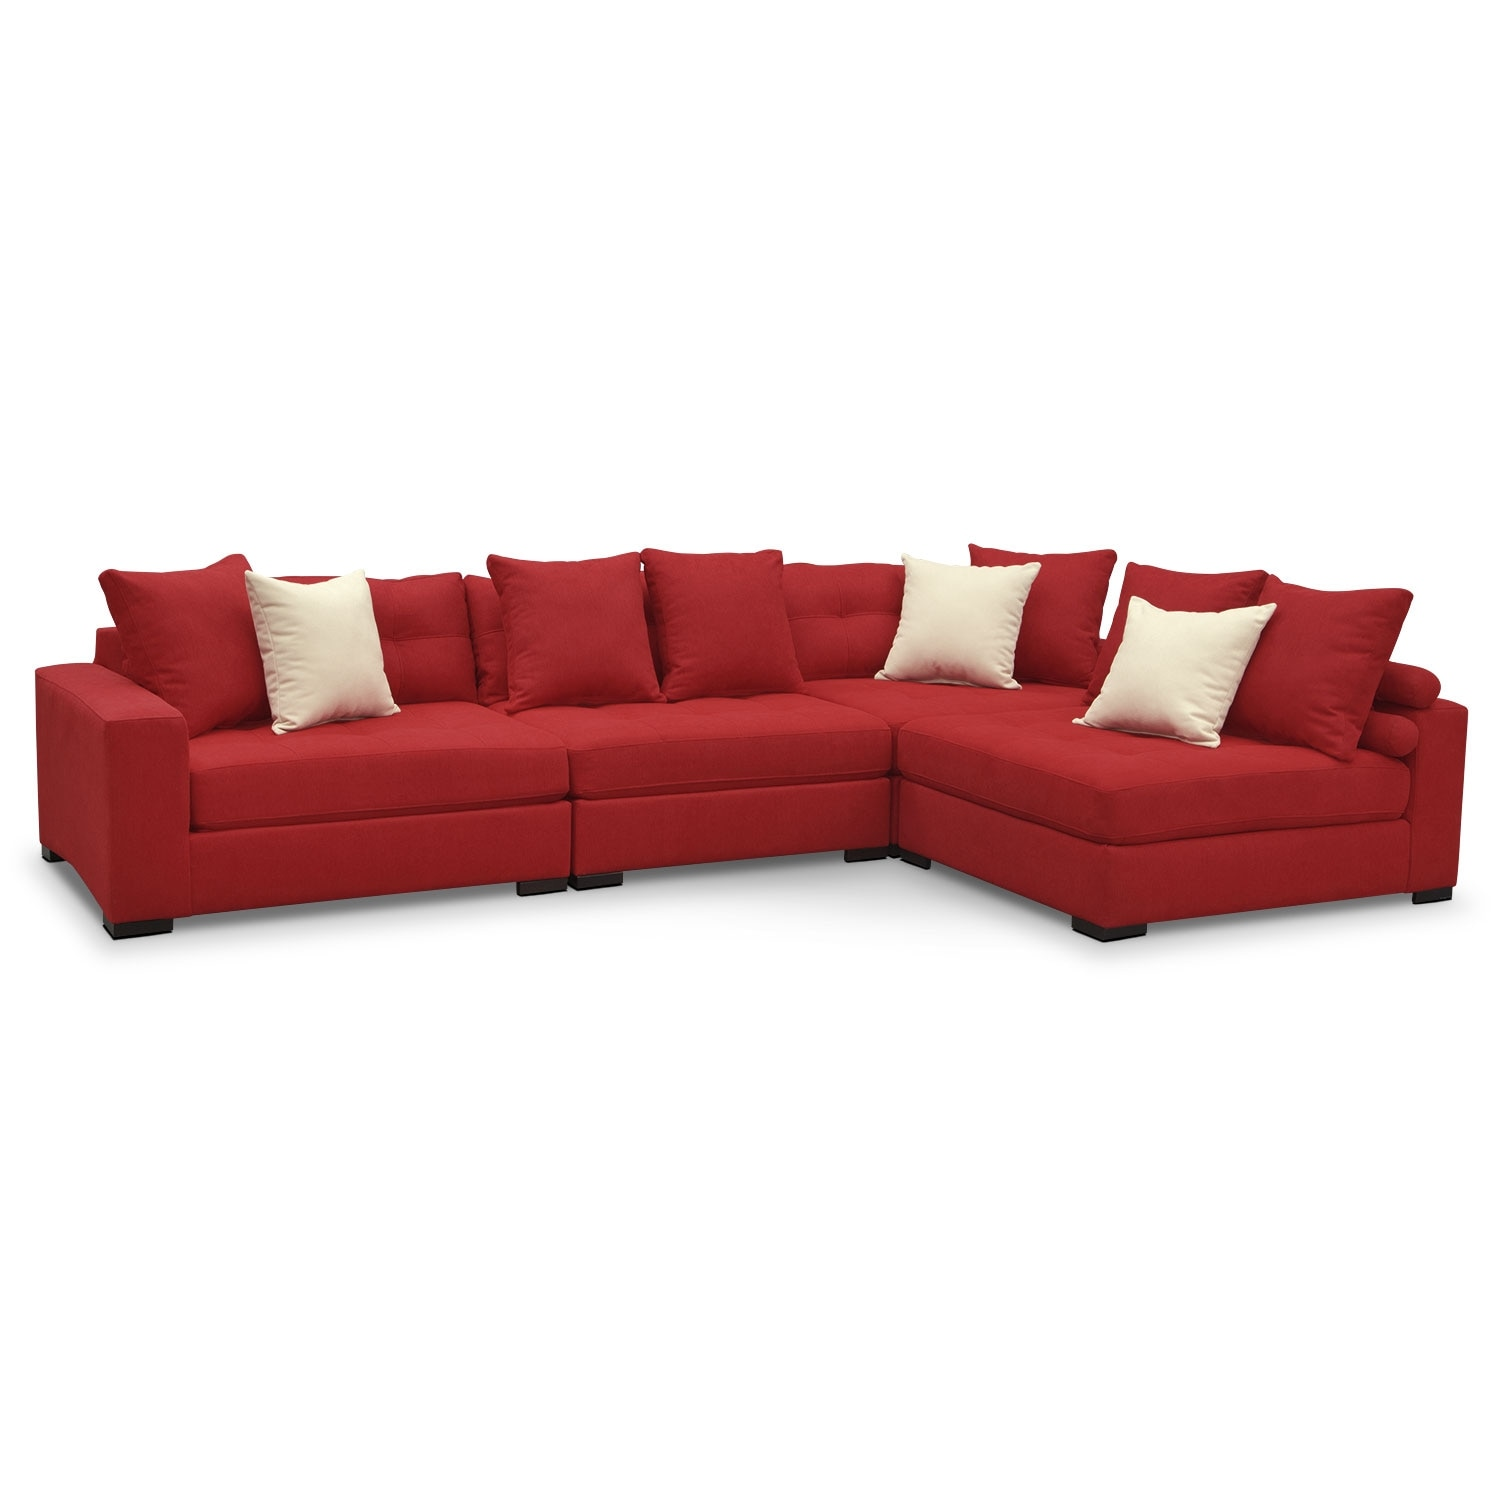 Venti 4 piece sectional red value city furniture for 4 piece living room furniture